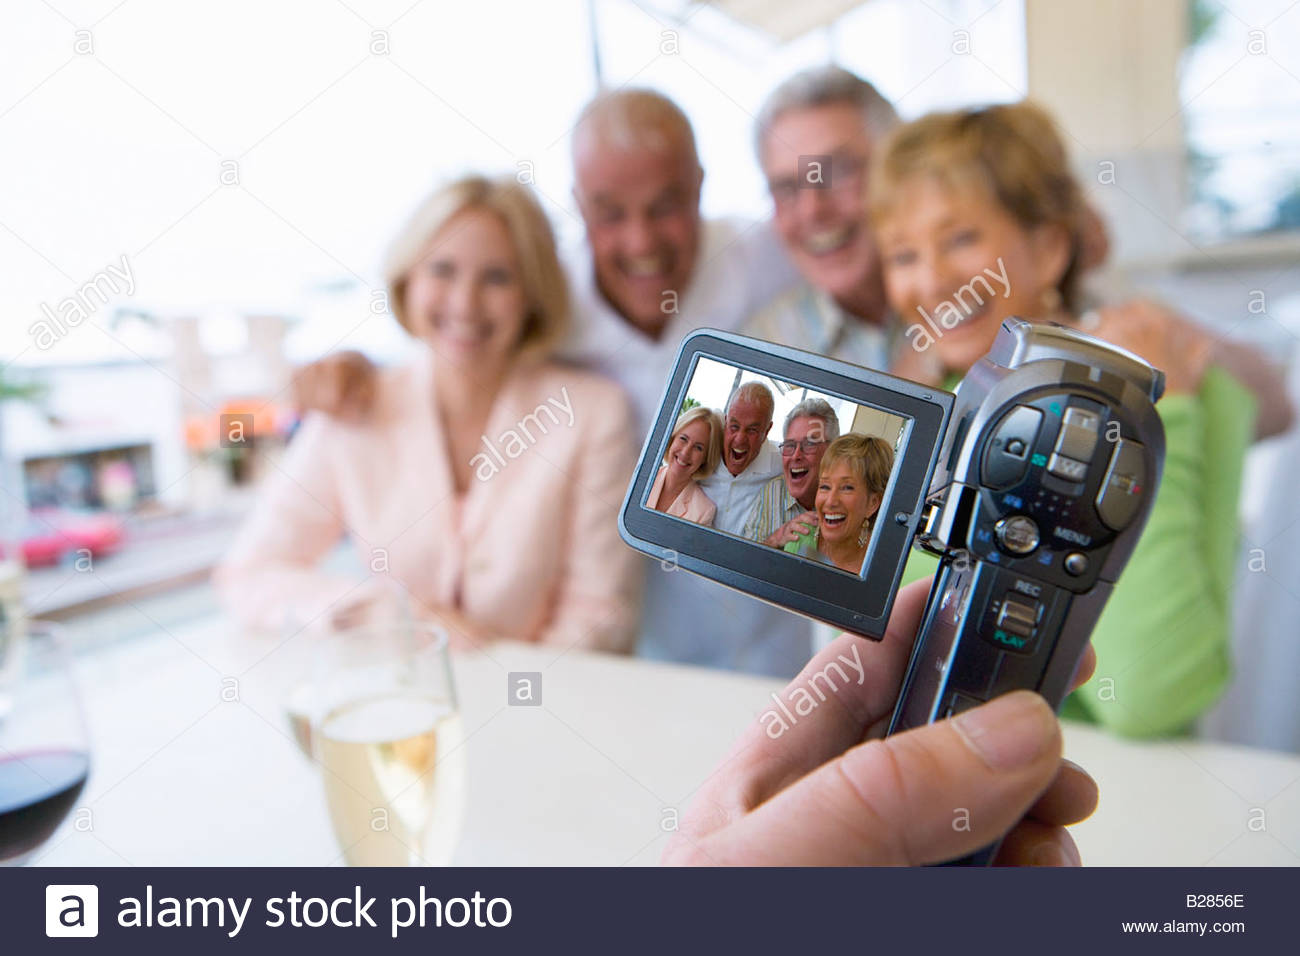 Man recording friends with video camera - Stock Image